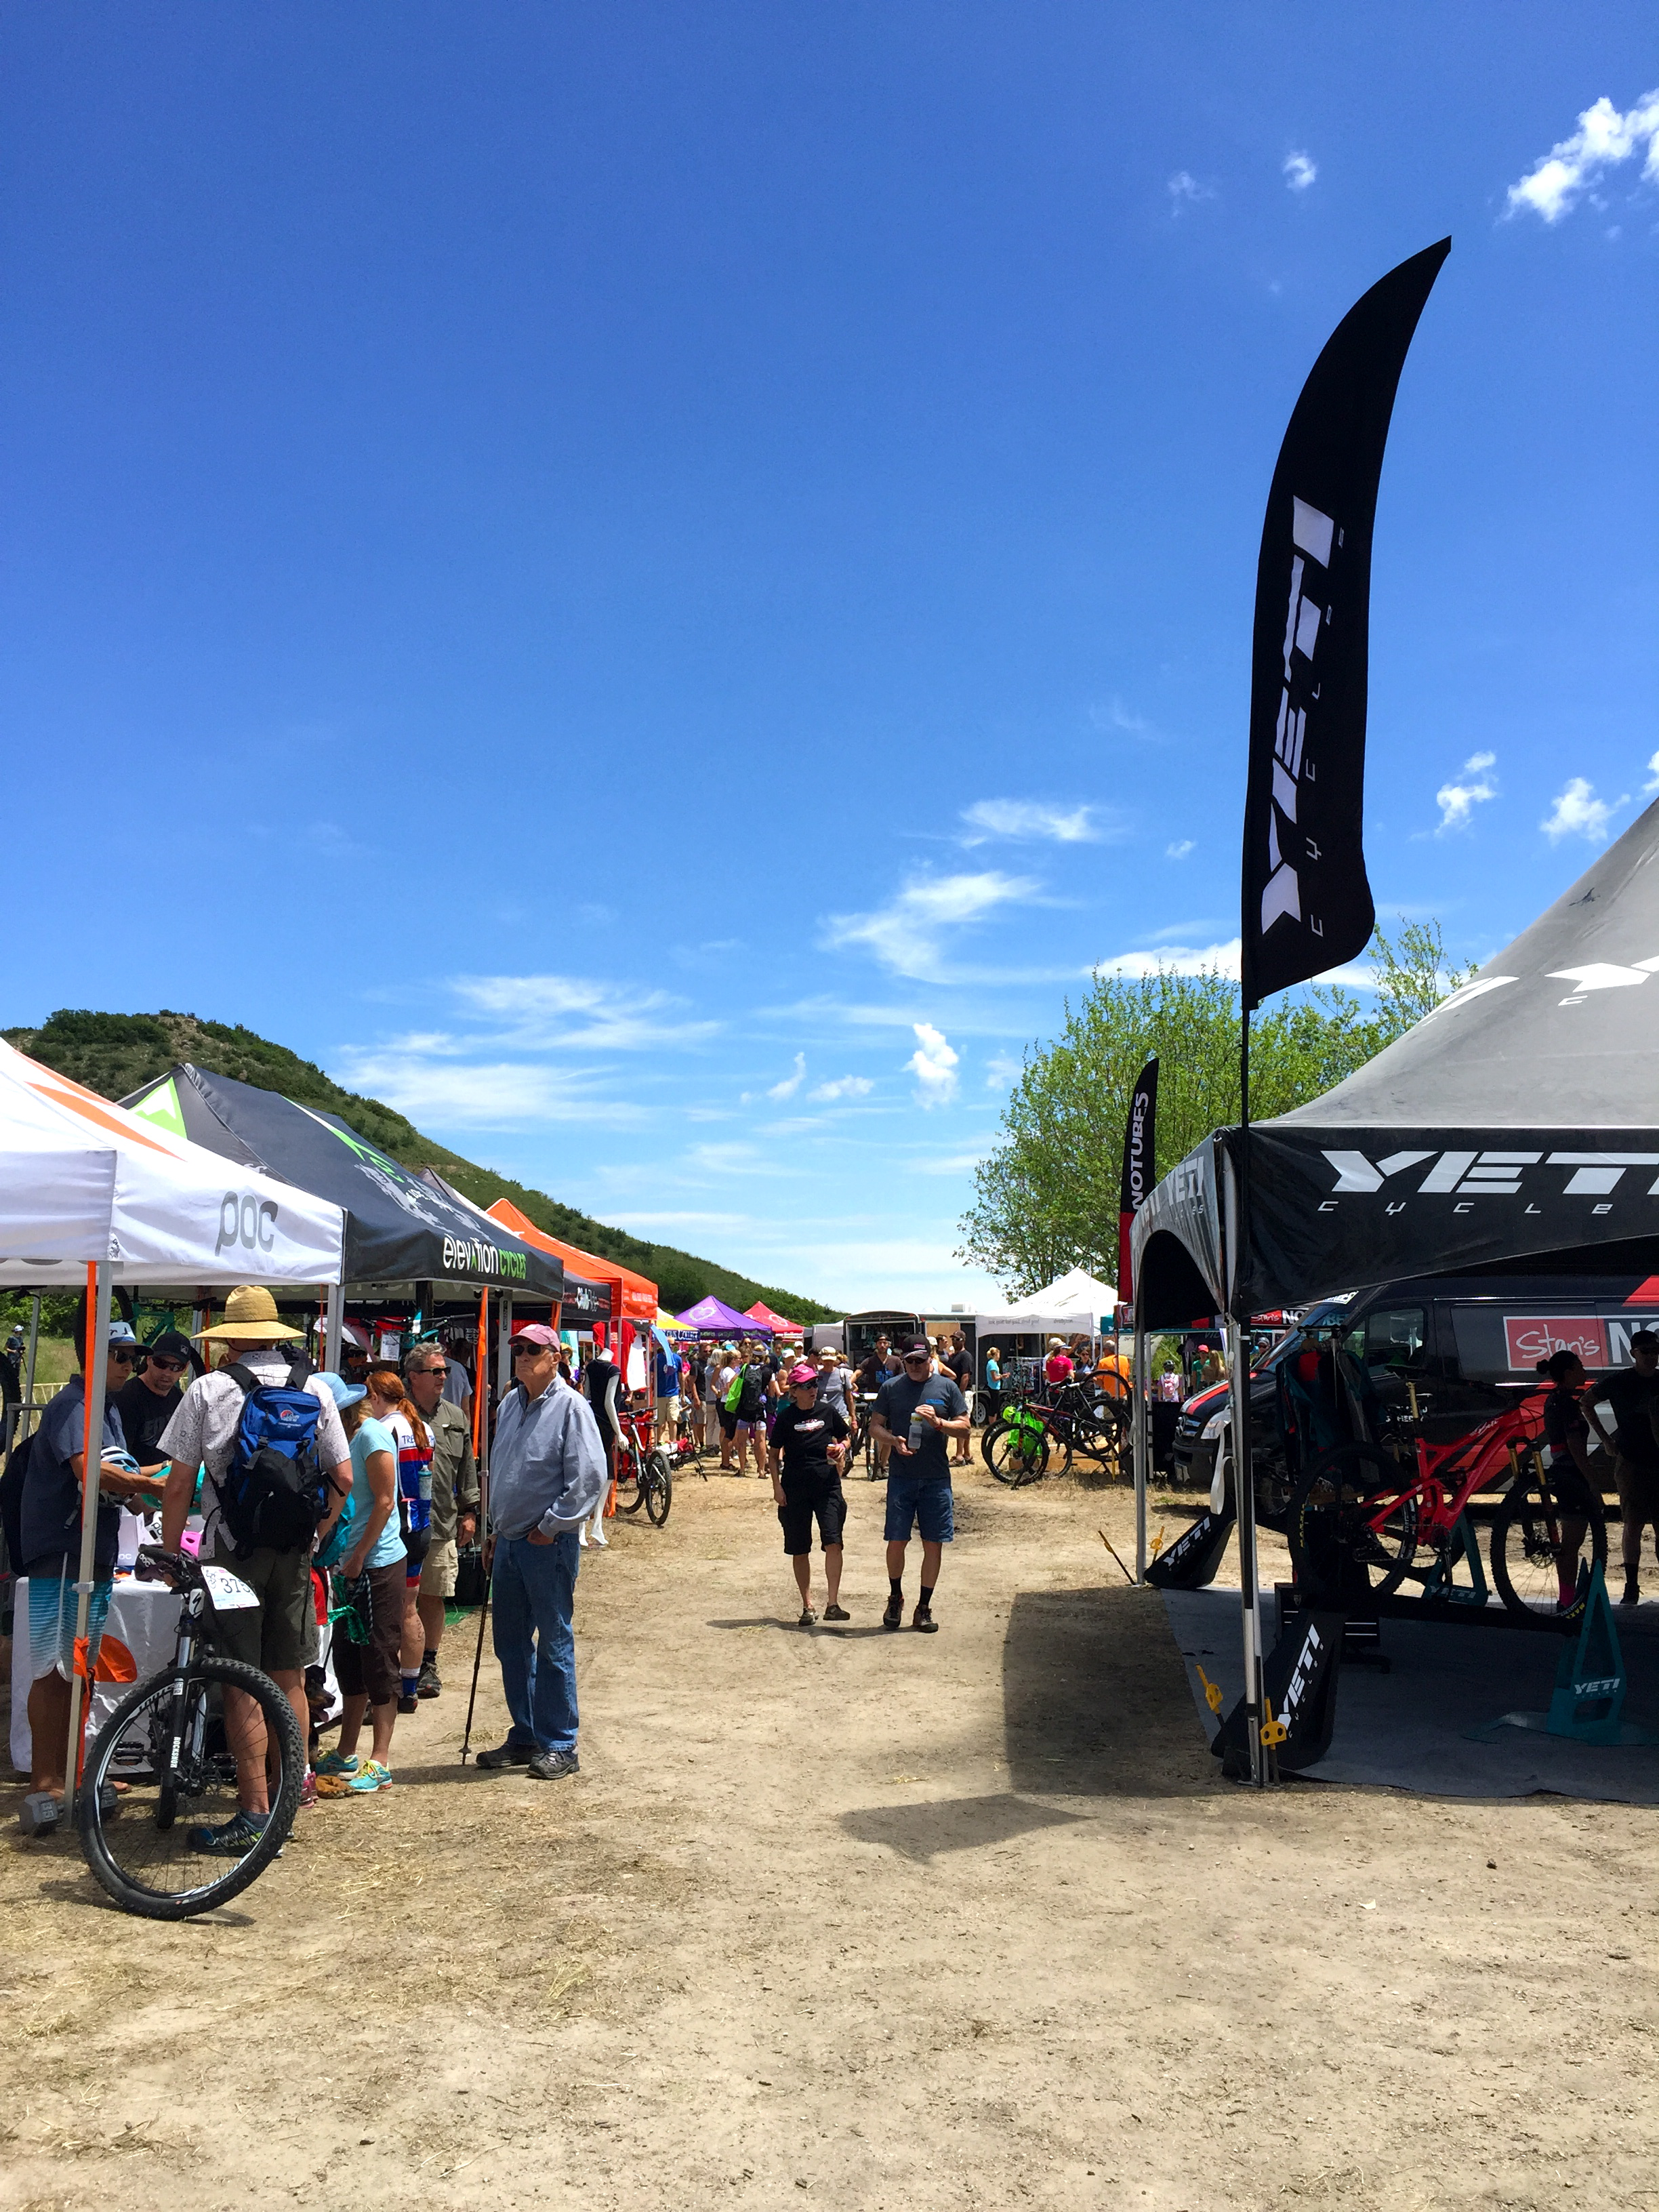 The 6th annual Beti Bike Bash drew nearly 400 female racers and a variety of vendors and sponsors.